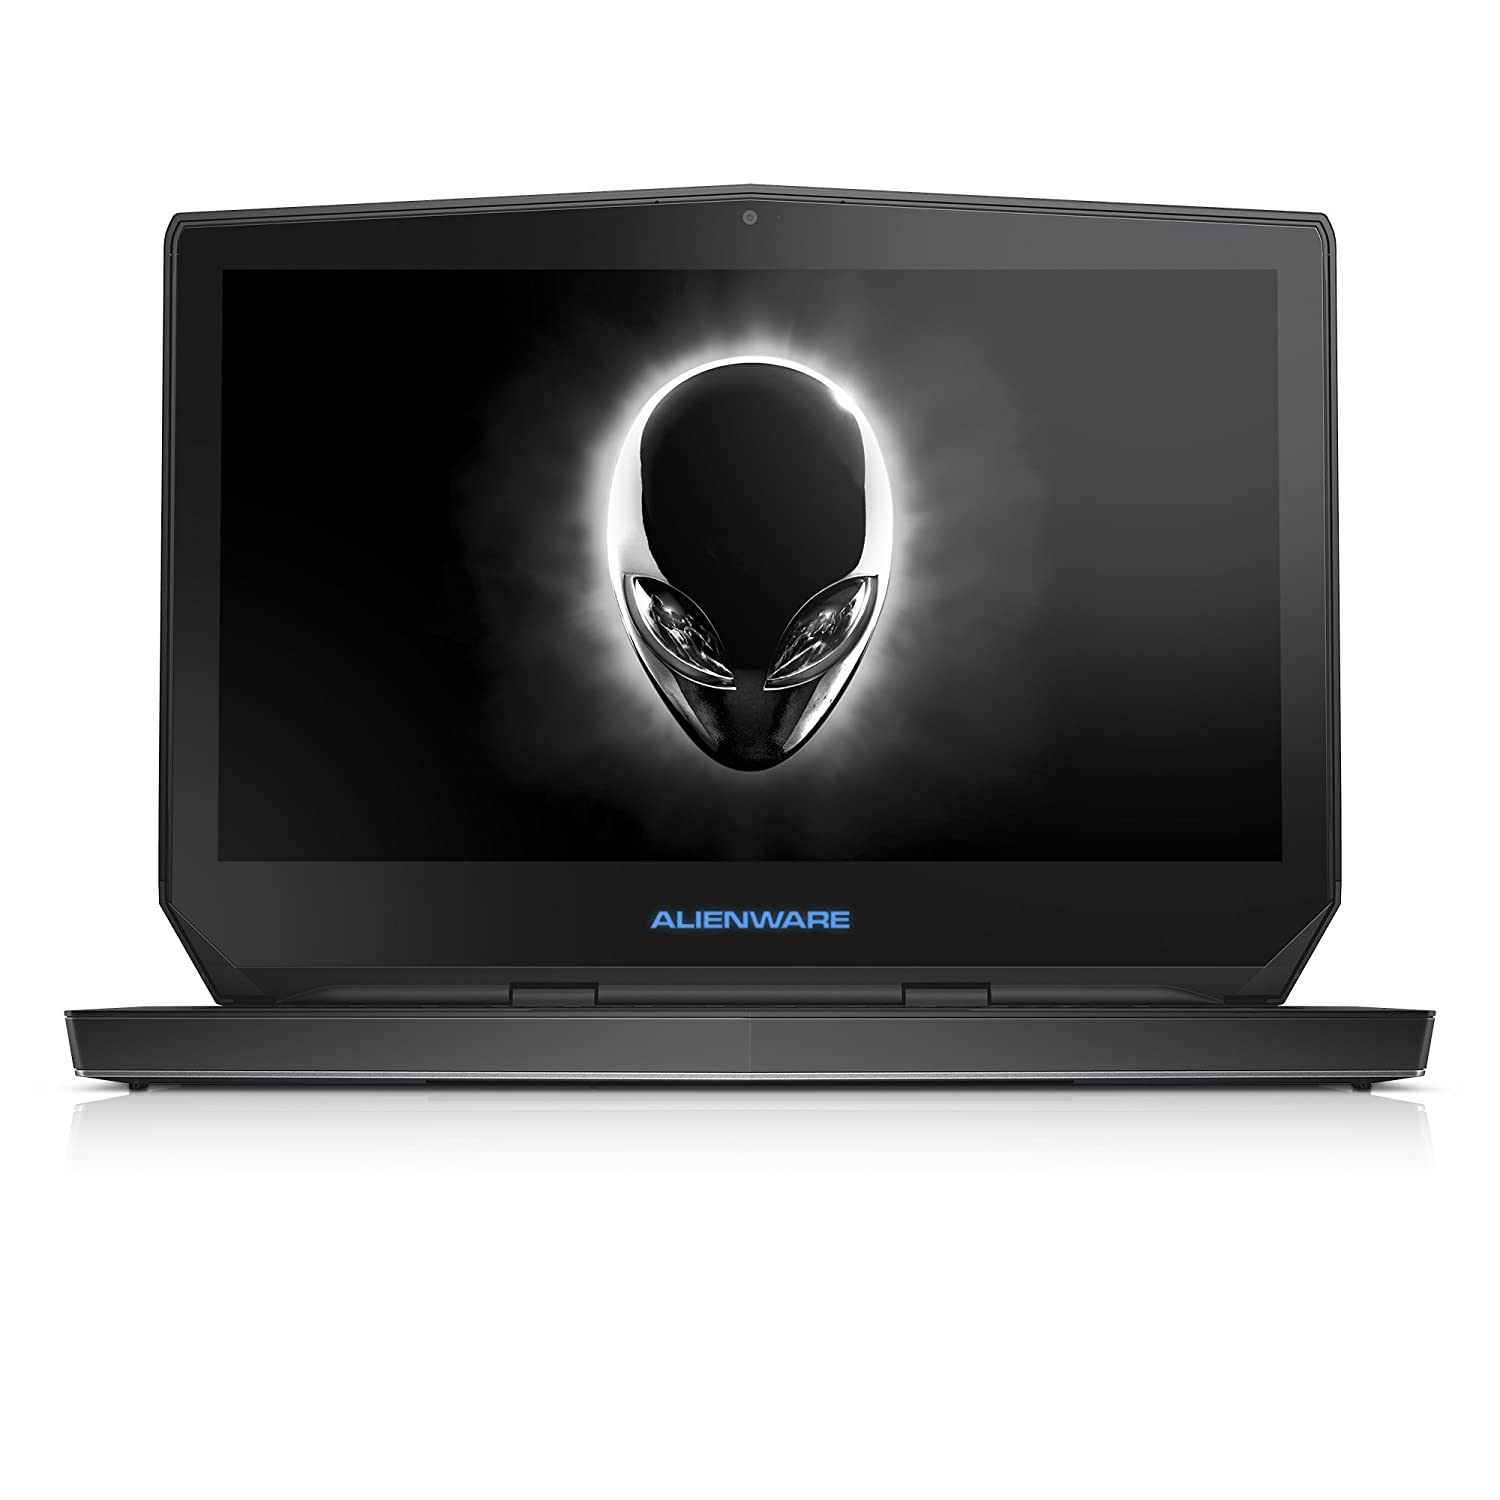 Amazon.com: Alienware AW13R2-1678SLV 13 Inch FHD Laptop (6th Generation Intel Core i5, 8 GB RAM, 500 GB HDD + 8 GB SSD) NVIDIA GeForce GTX 960M: Computers & ...